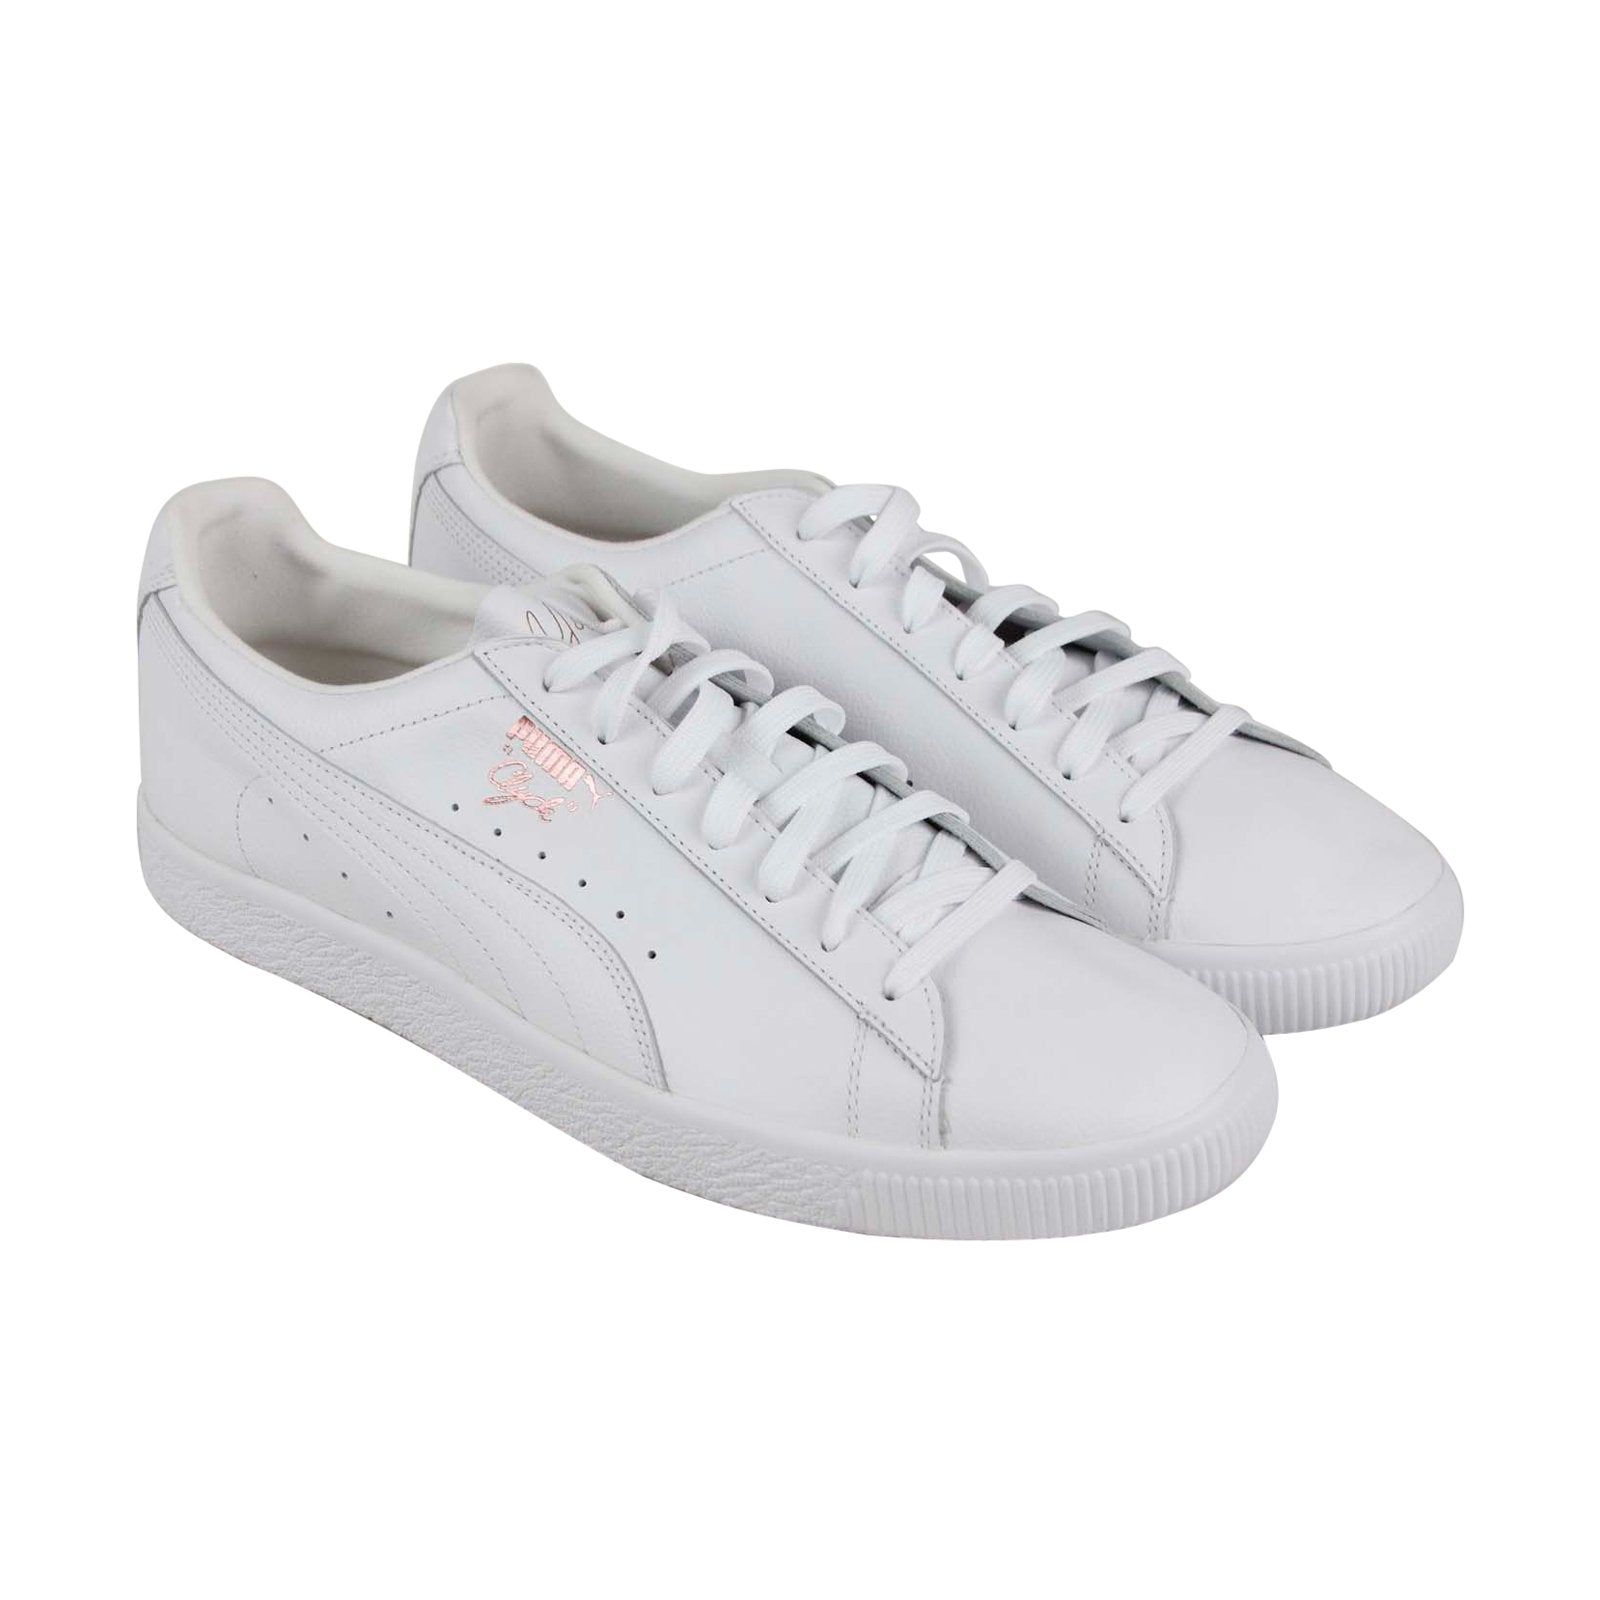 buy popular 77c19 6890f Puma Clyde X Emory Jones Mens White Leather Low Top Lace Up Sneakers Shoes